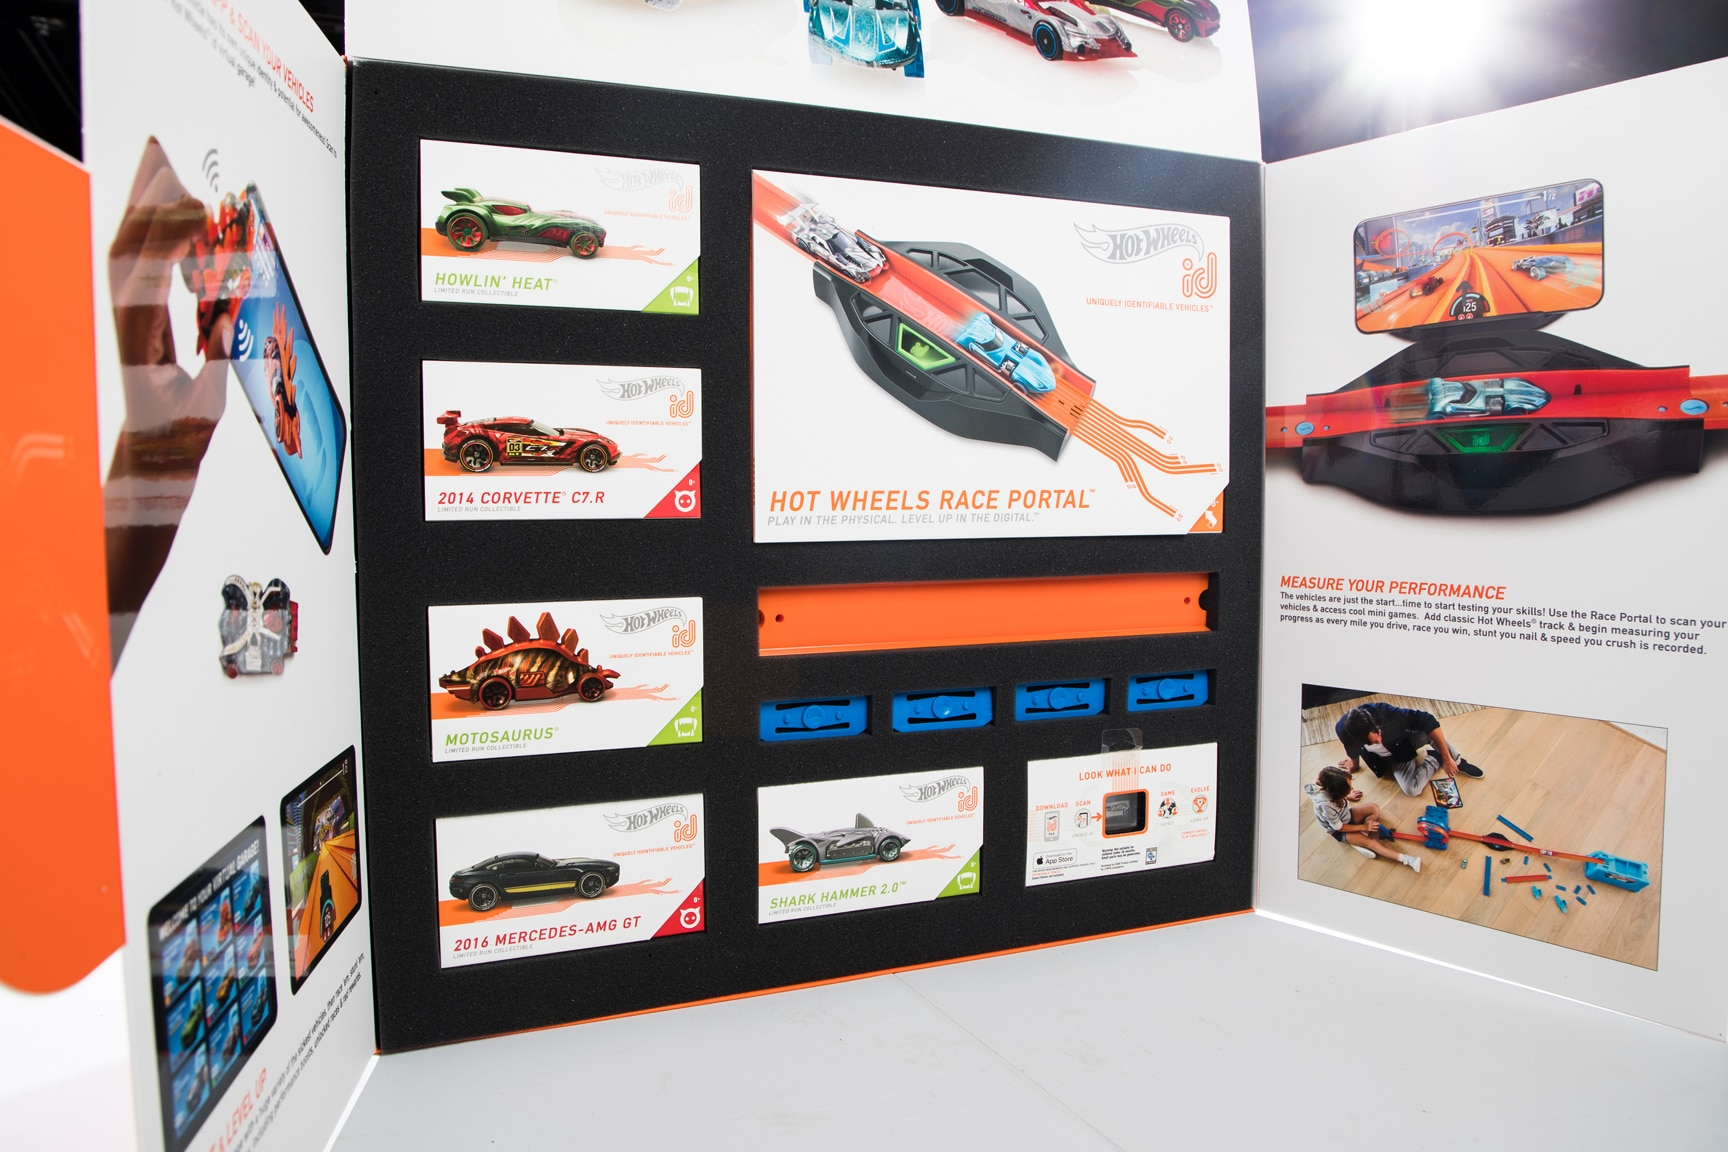 a7752c84d8 Hot Wheels ID Review: The Future of Diecast Cars Is Super Cool ...